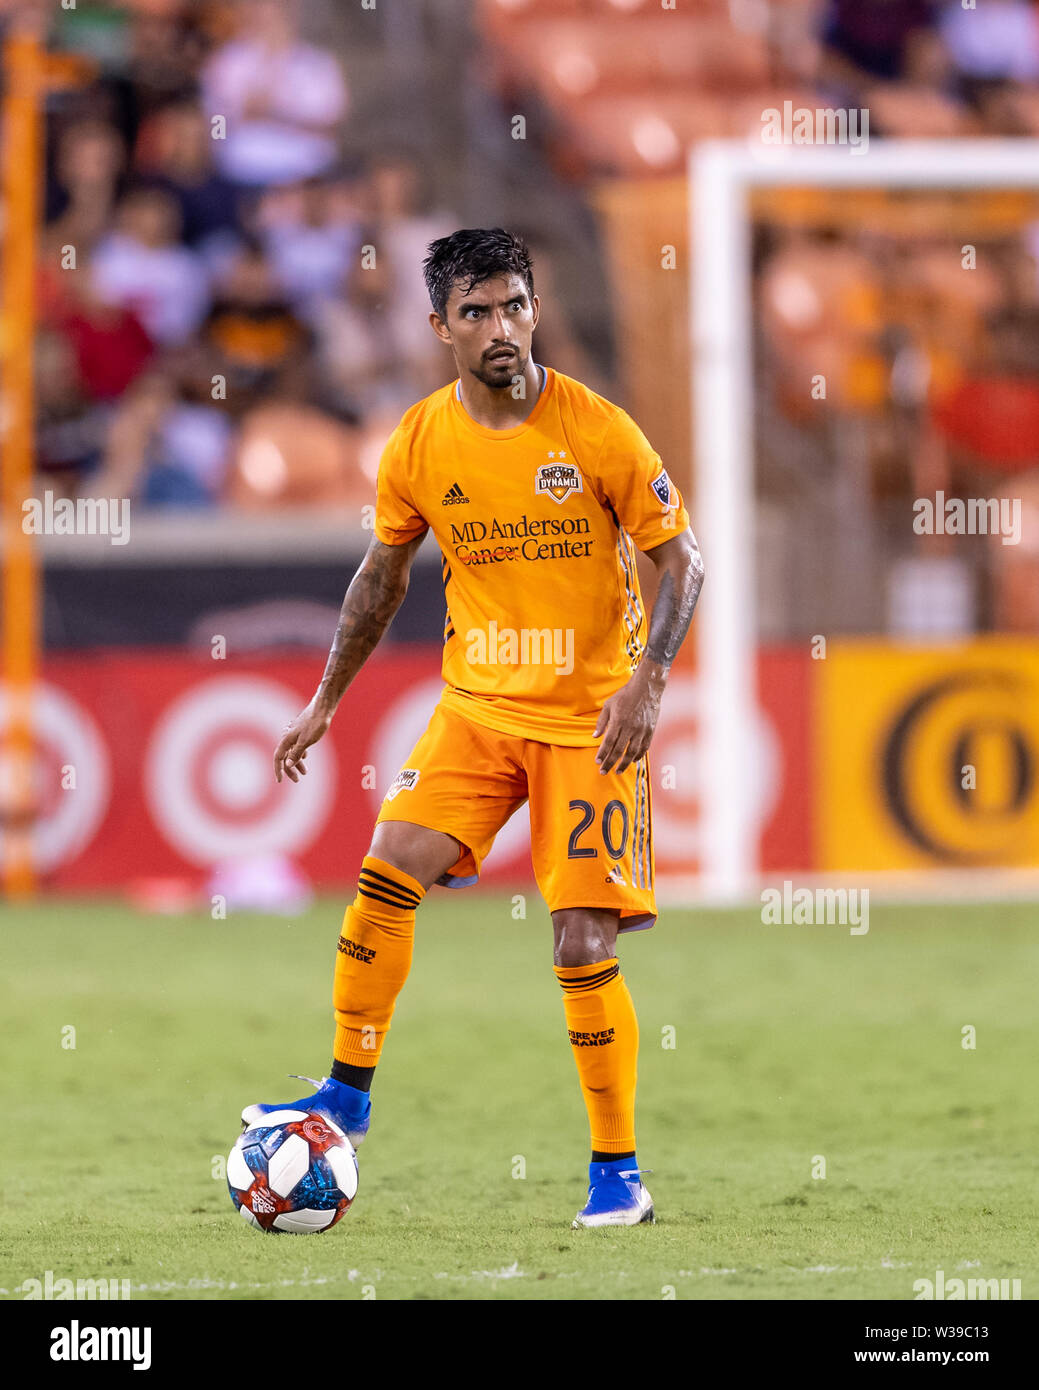 Houston, Texas, USA. 12th July, 2019. Houston Dynamo defender A.J. DeLaGarza (20) looks to send the ball during a match between Los Angeles FC and Houston Dynamo at BBVA Stadium in Houston, Texas. The final LAFC wins 3-1. Maria Lysaker/CSM/Alamy Live News - Stock Image